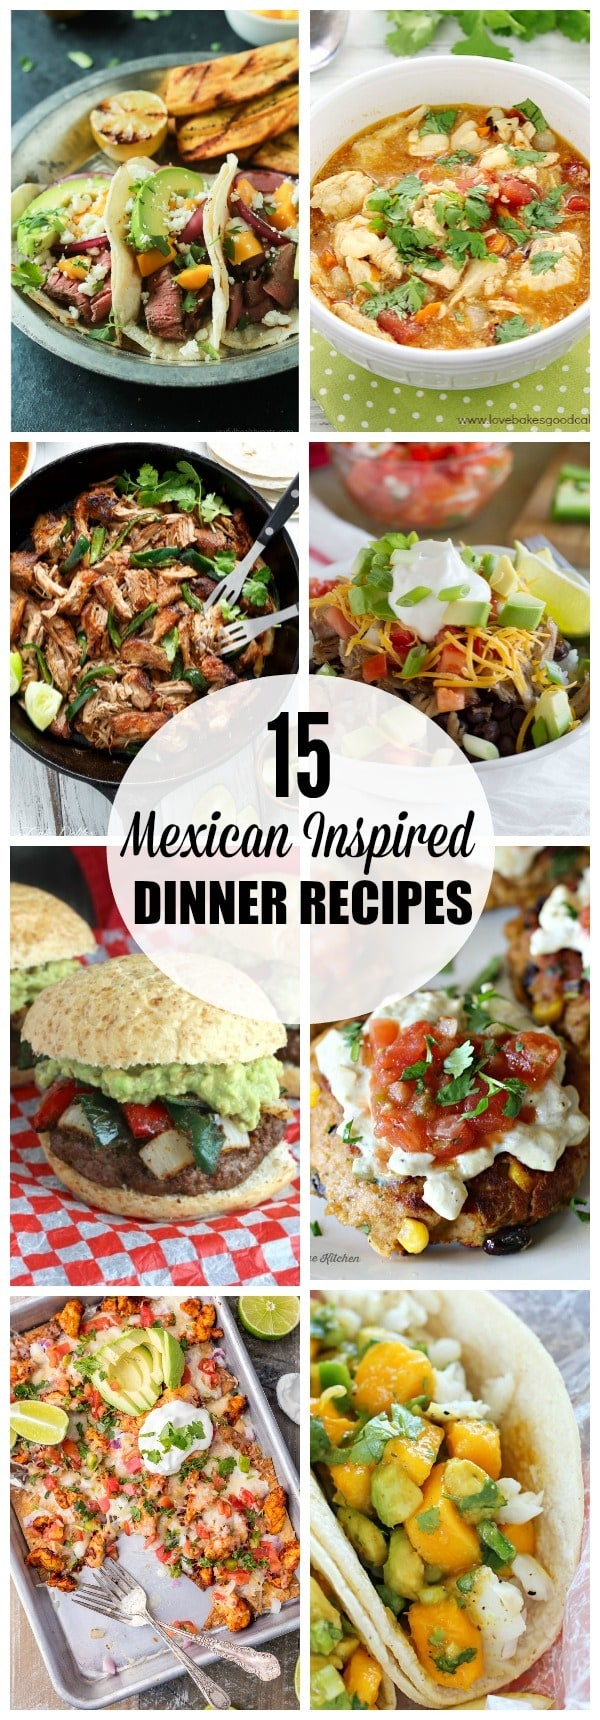 Mexican inspired dinner recipes for your next Cinco de Mayo celebration! From tacos to posole, there's plenty of options to spice up your dinner rotation!